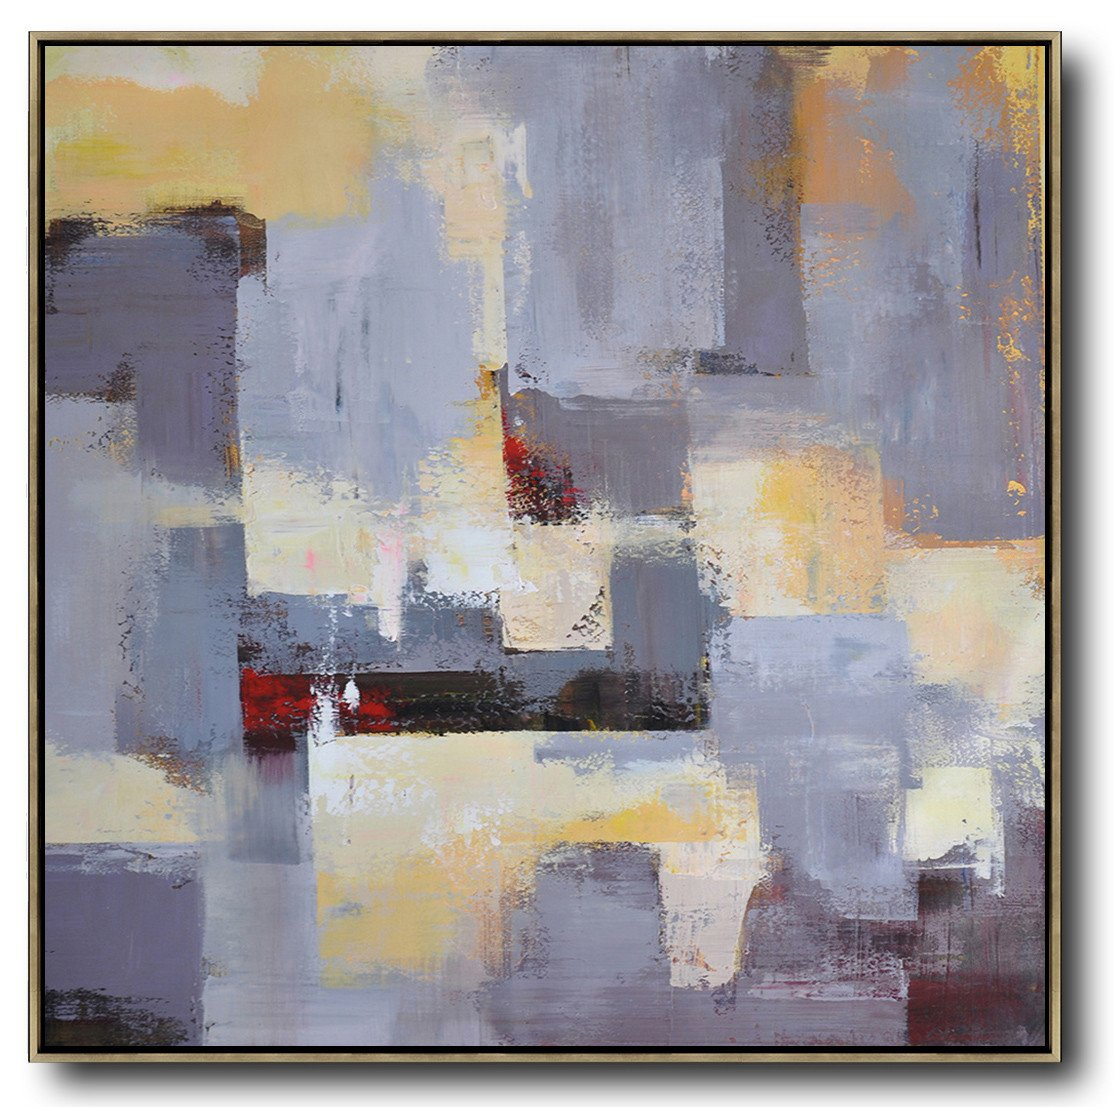 Extra Large Abstract Painting On Canvas,Oversized Palette Knife Painting Contemporary Art On Canvas,Decorating A Big Living Room,Grey,Blue,Red,Yellow.etc